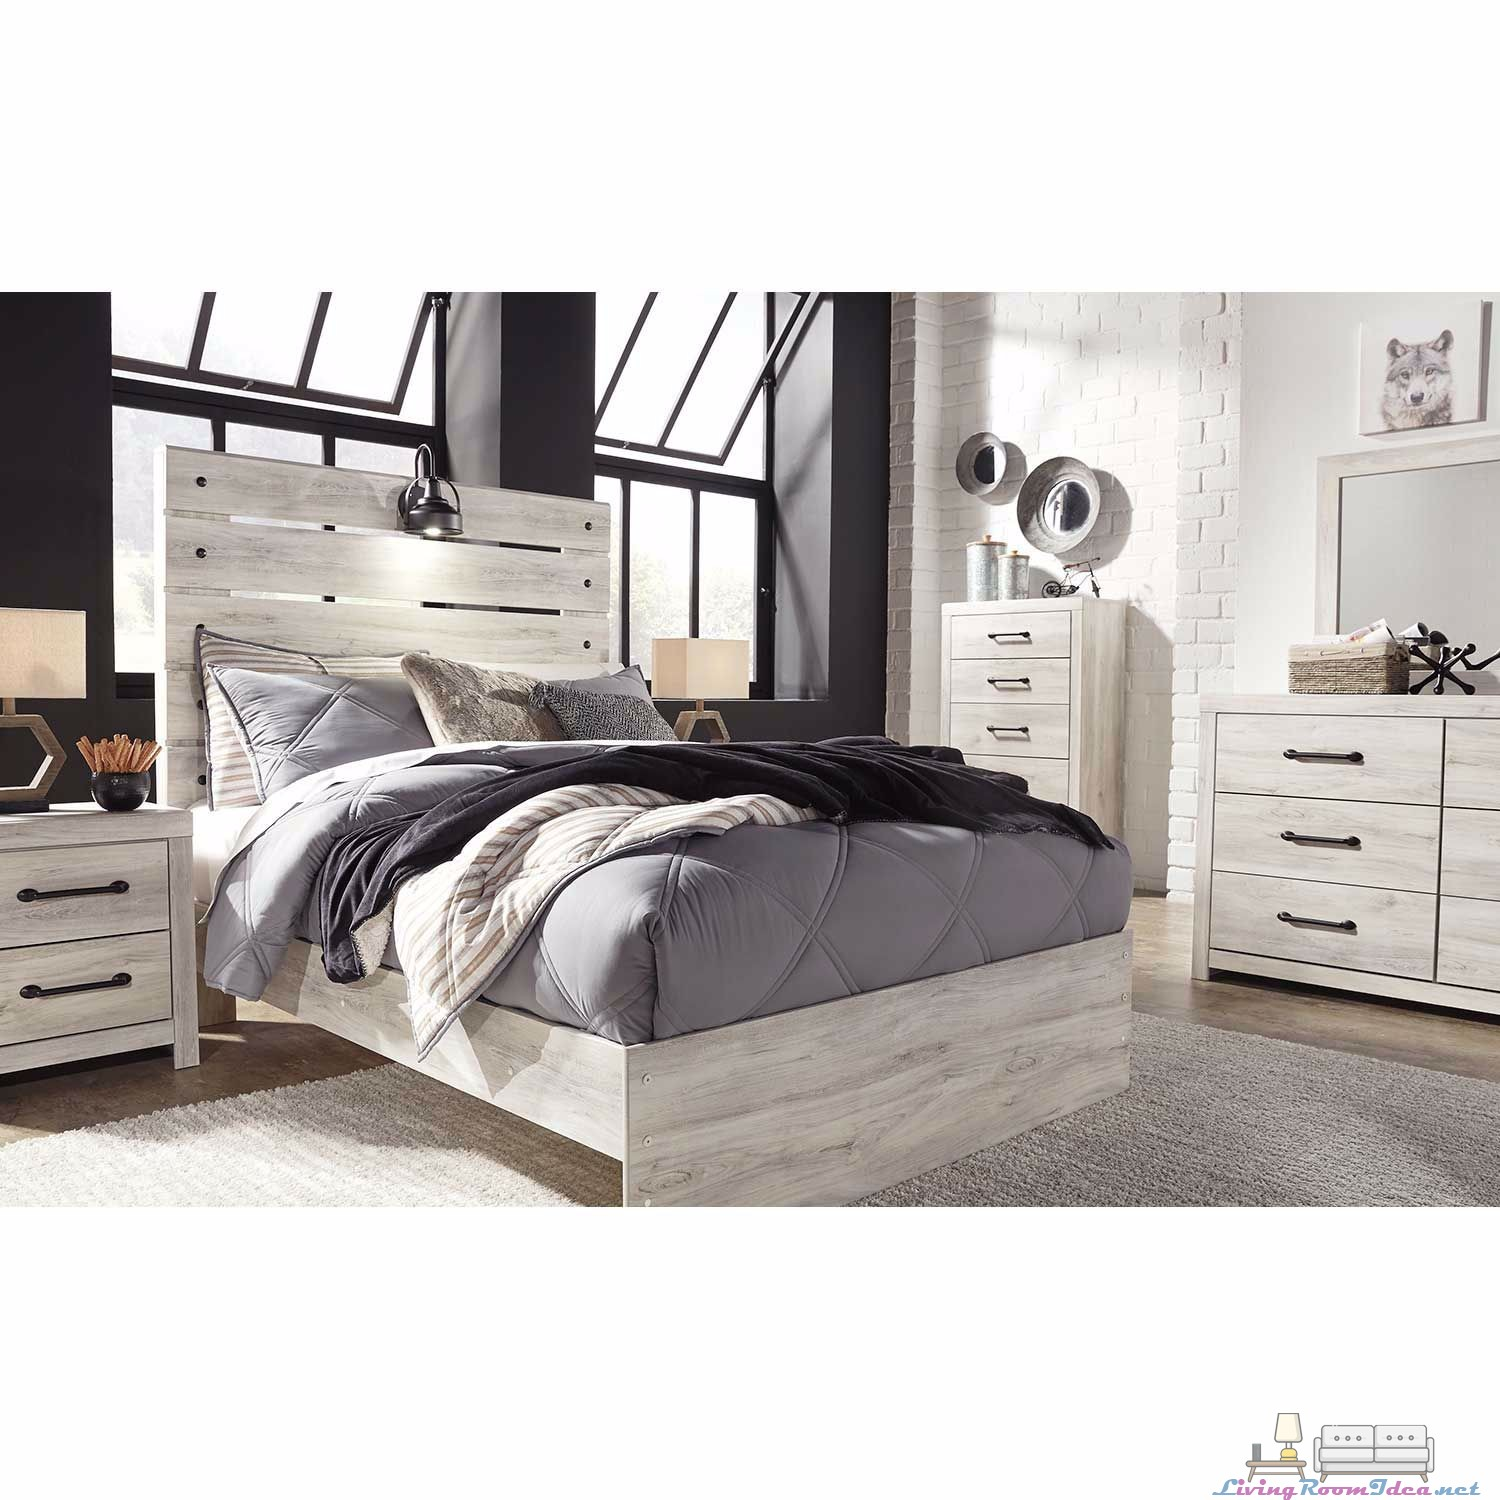 Cambeck 5 Piece Bedroom Set 2